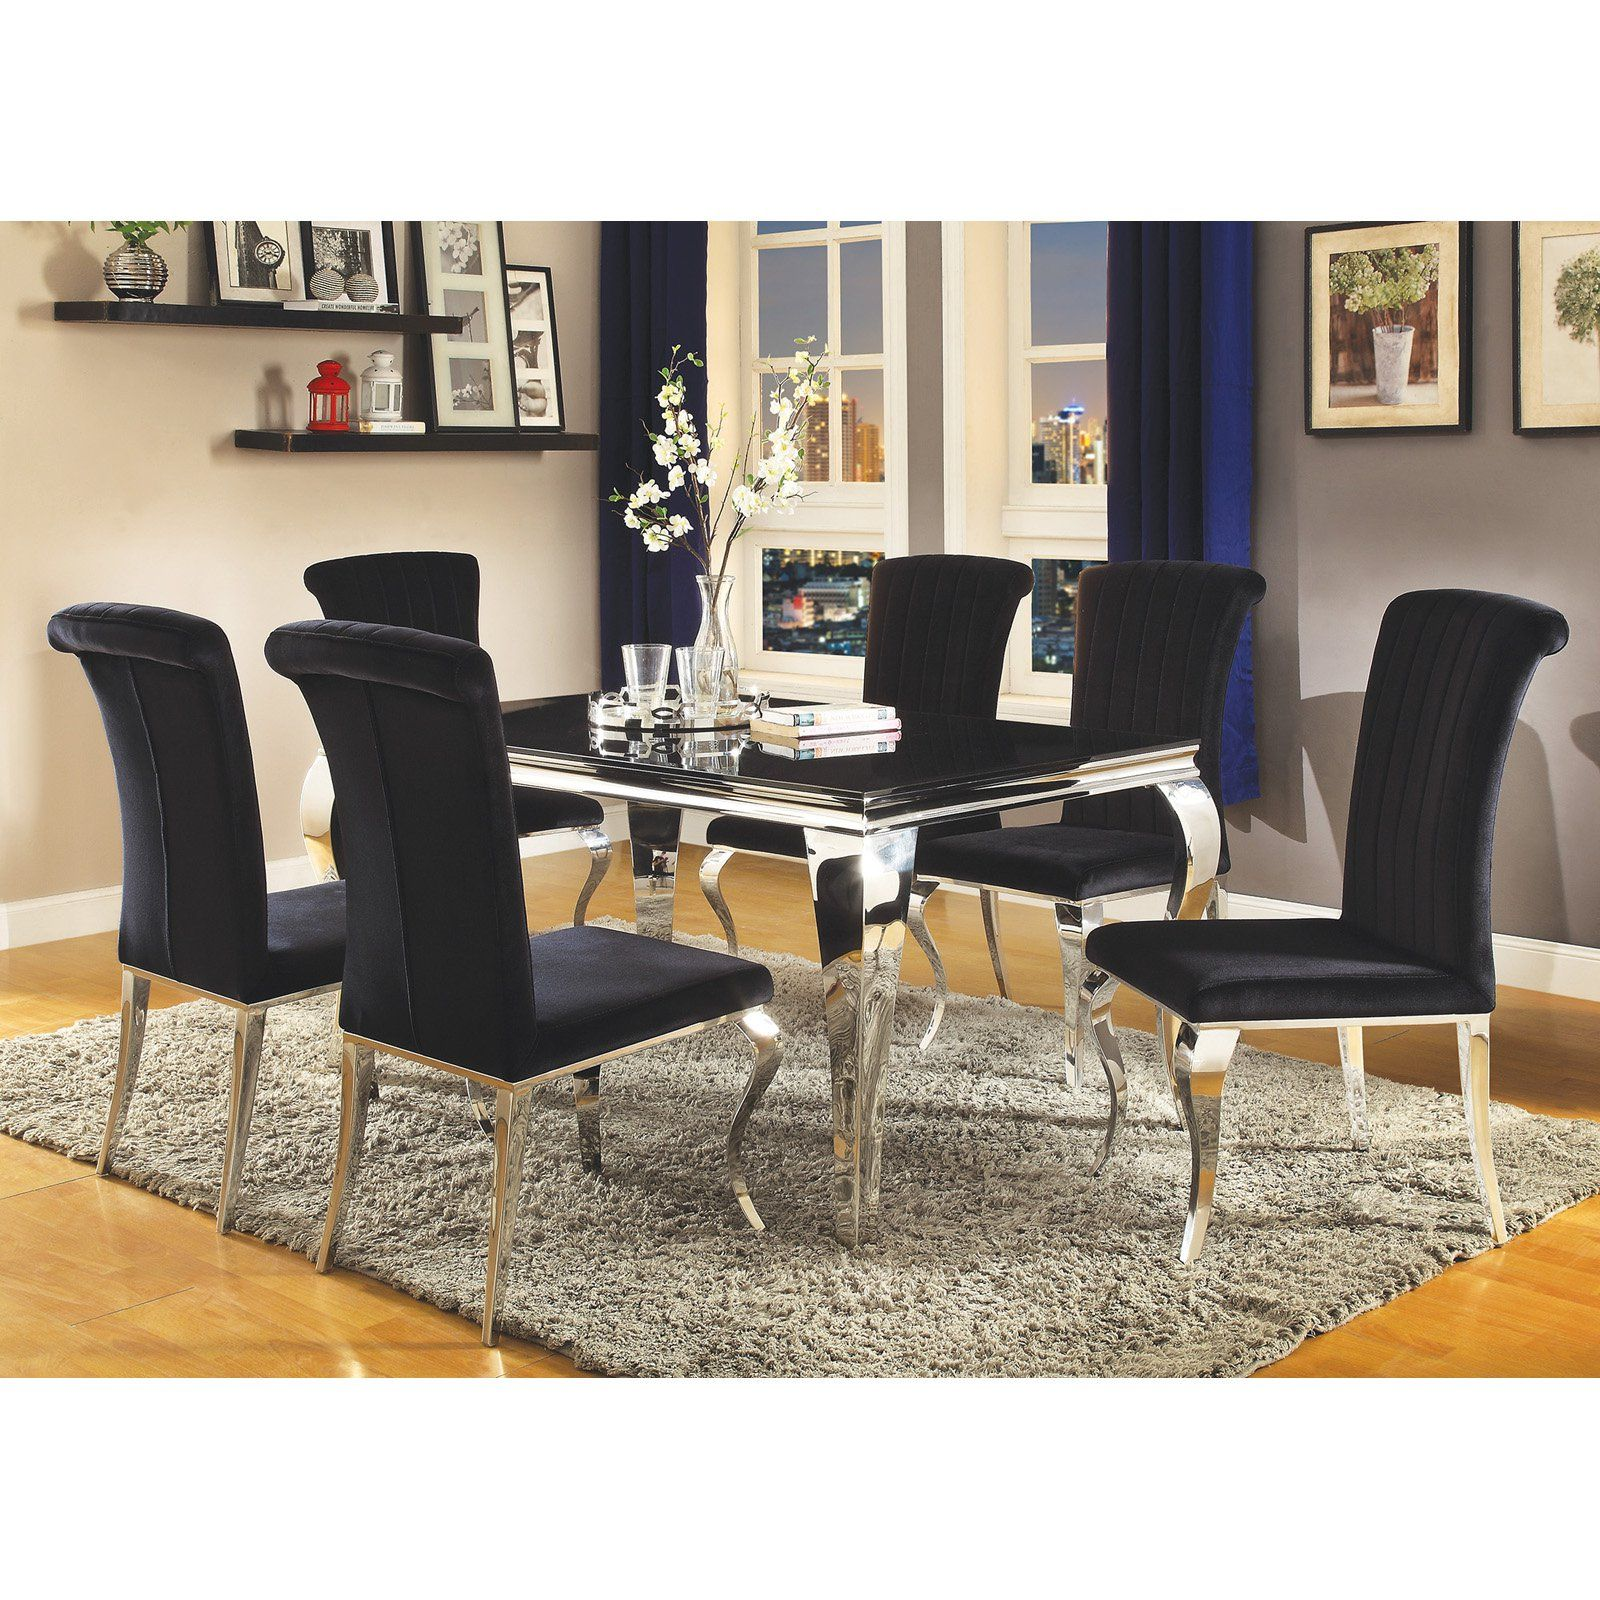 Coaster Furniture Carone Dining Table Dining Table Black Metal